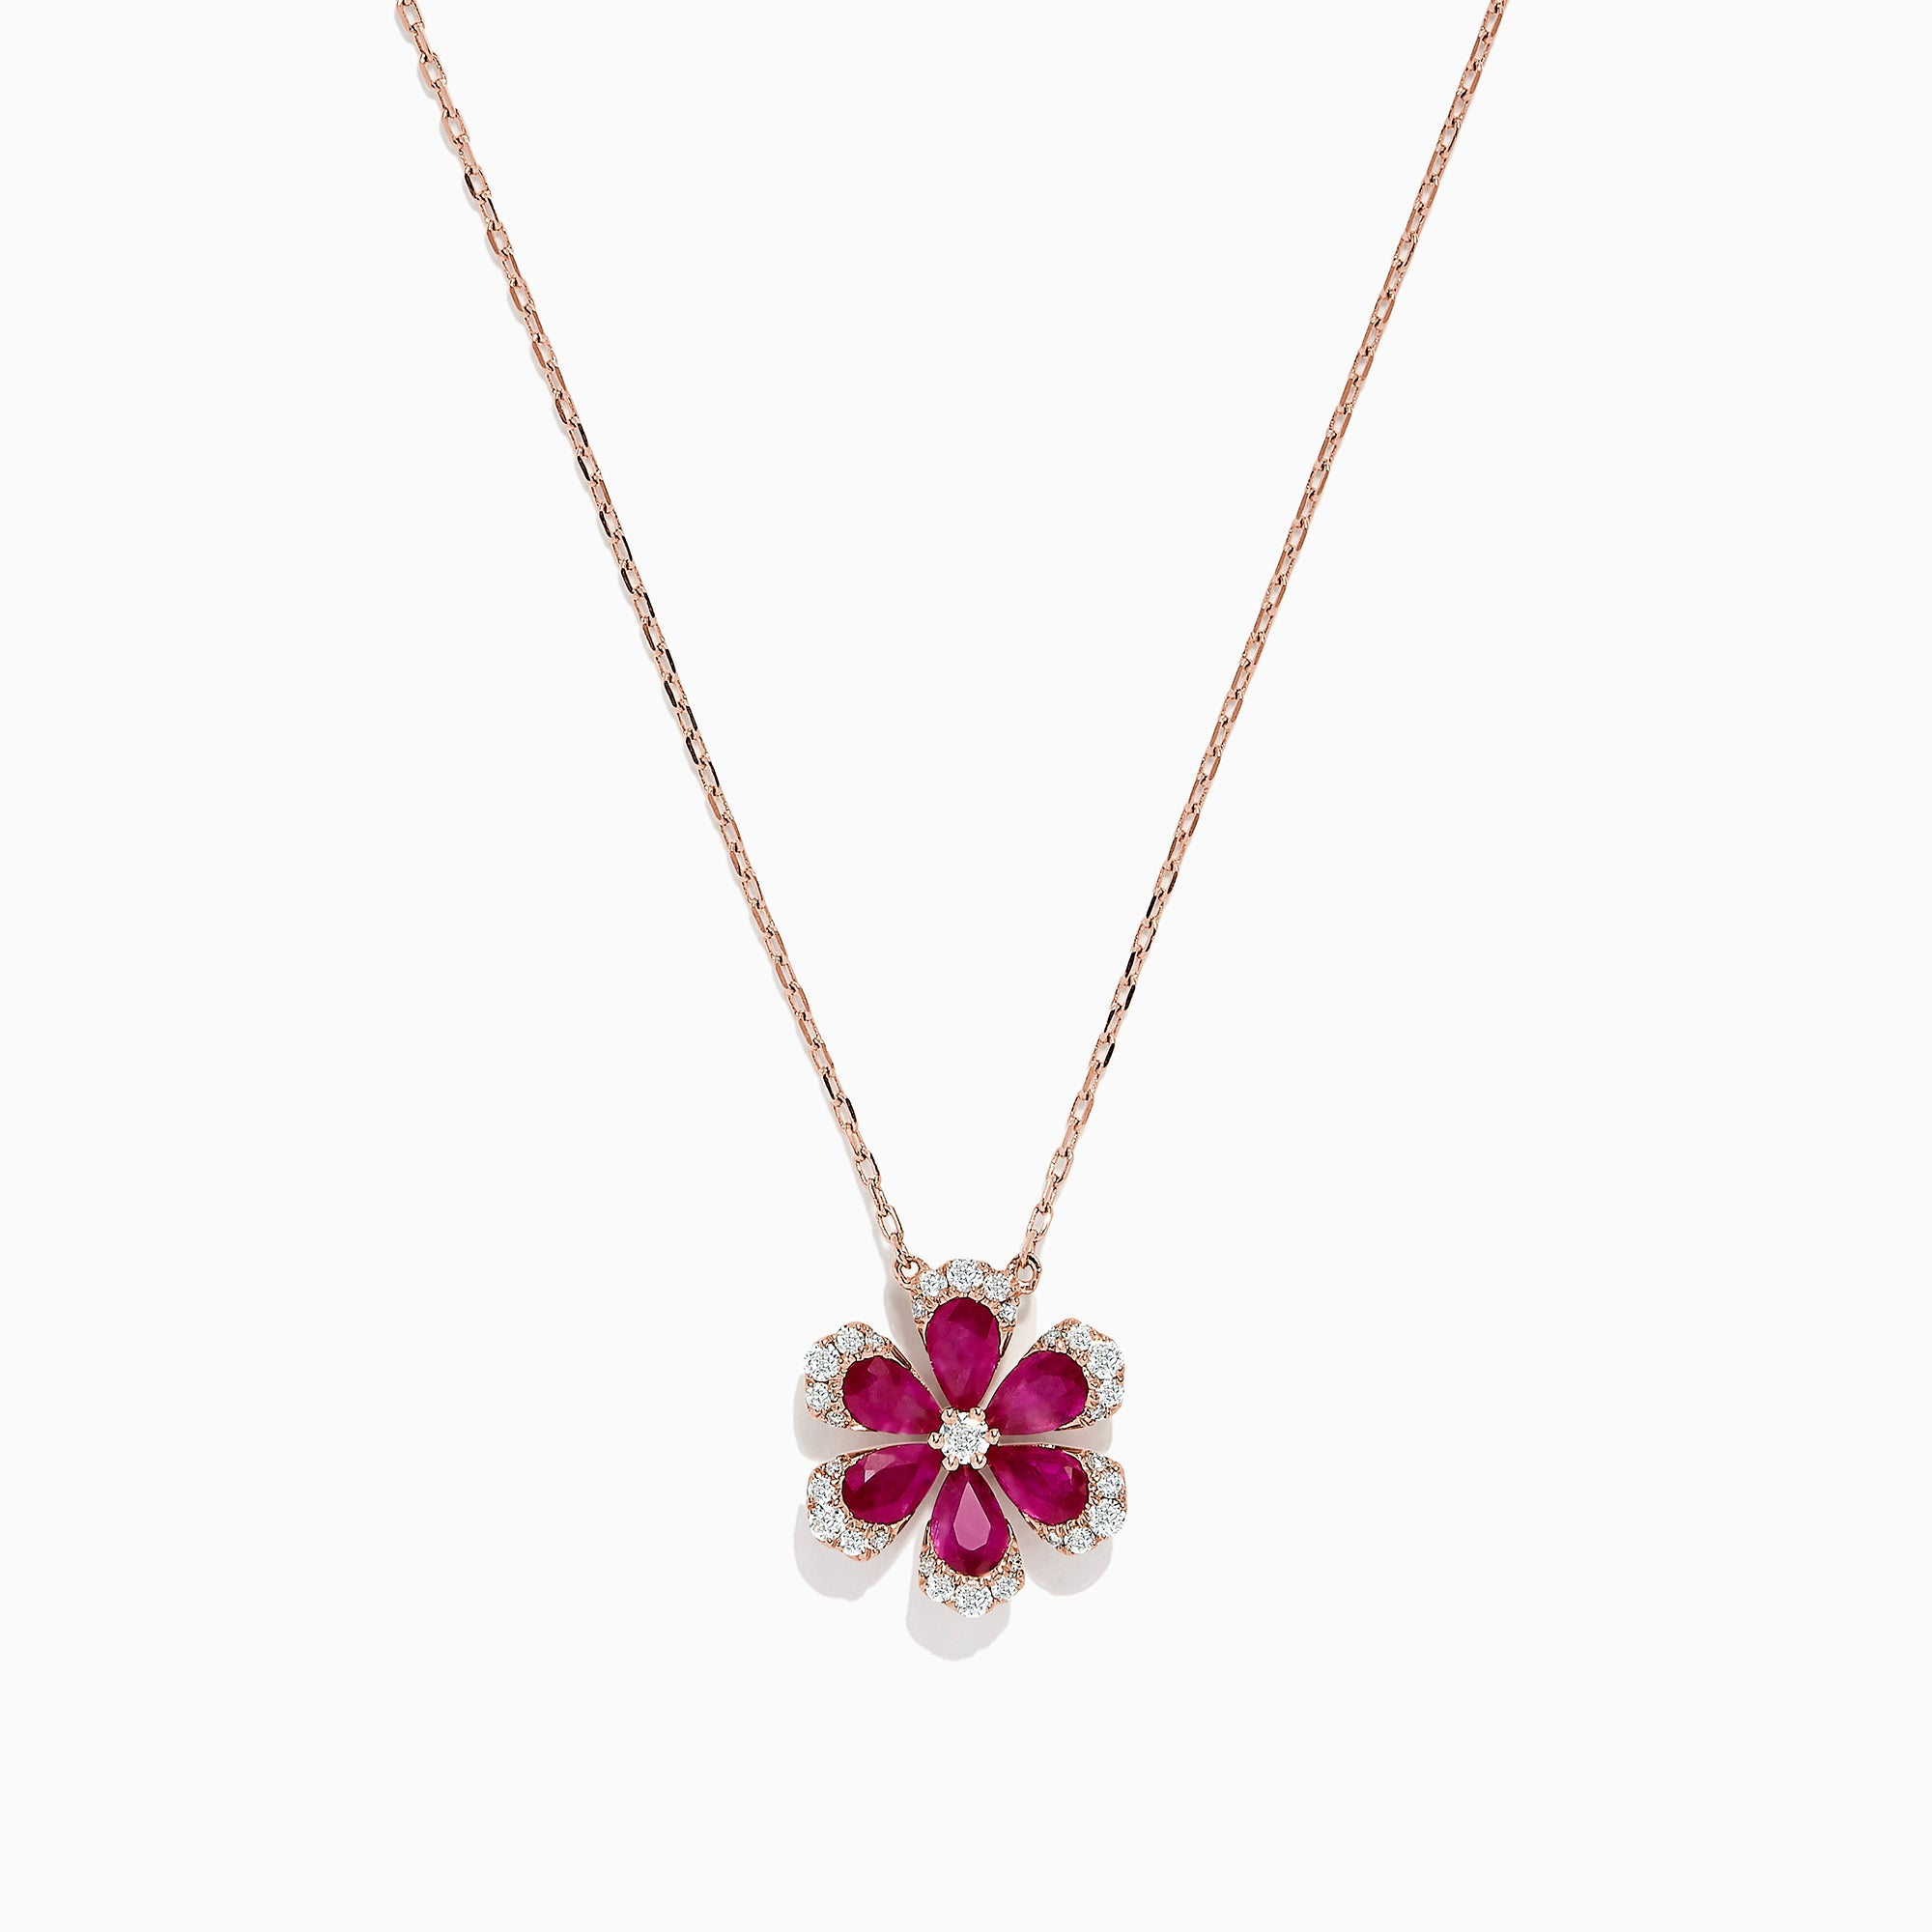 Effy Nature 14K Rose Gold Ruby and Diamond Flower Necklace, 1.91 TCW